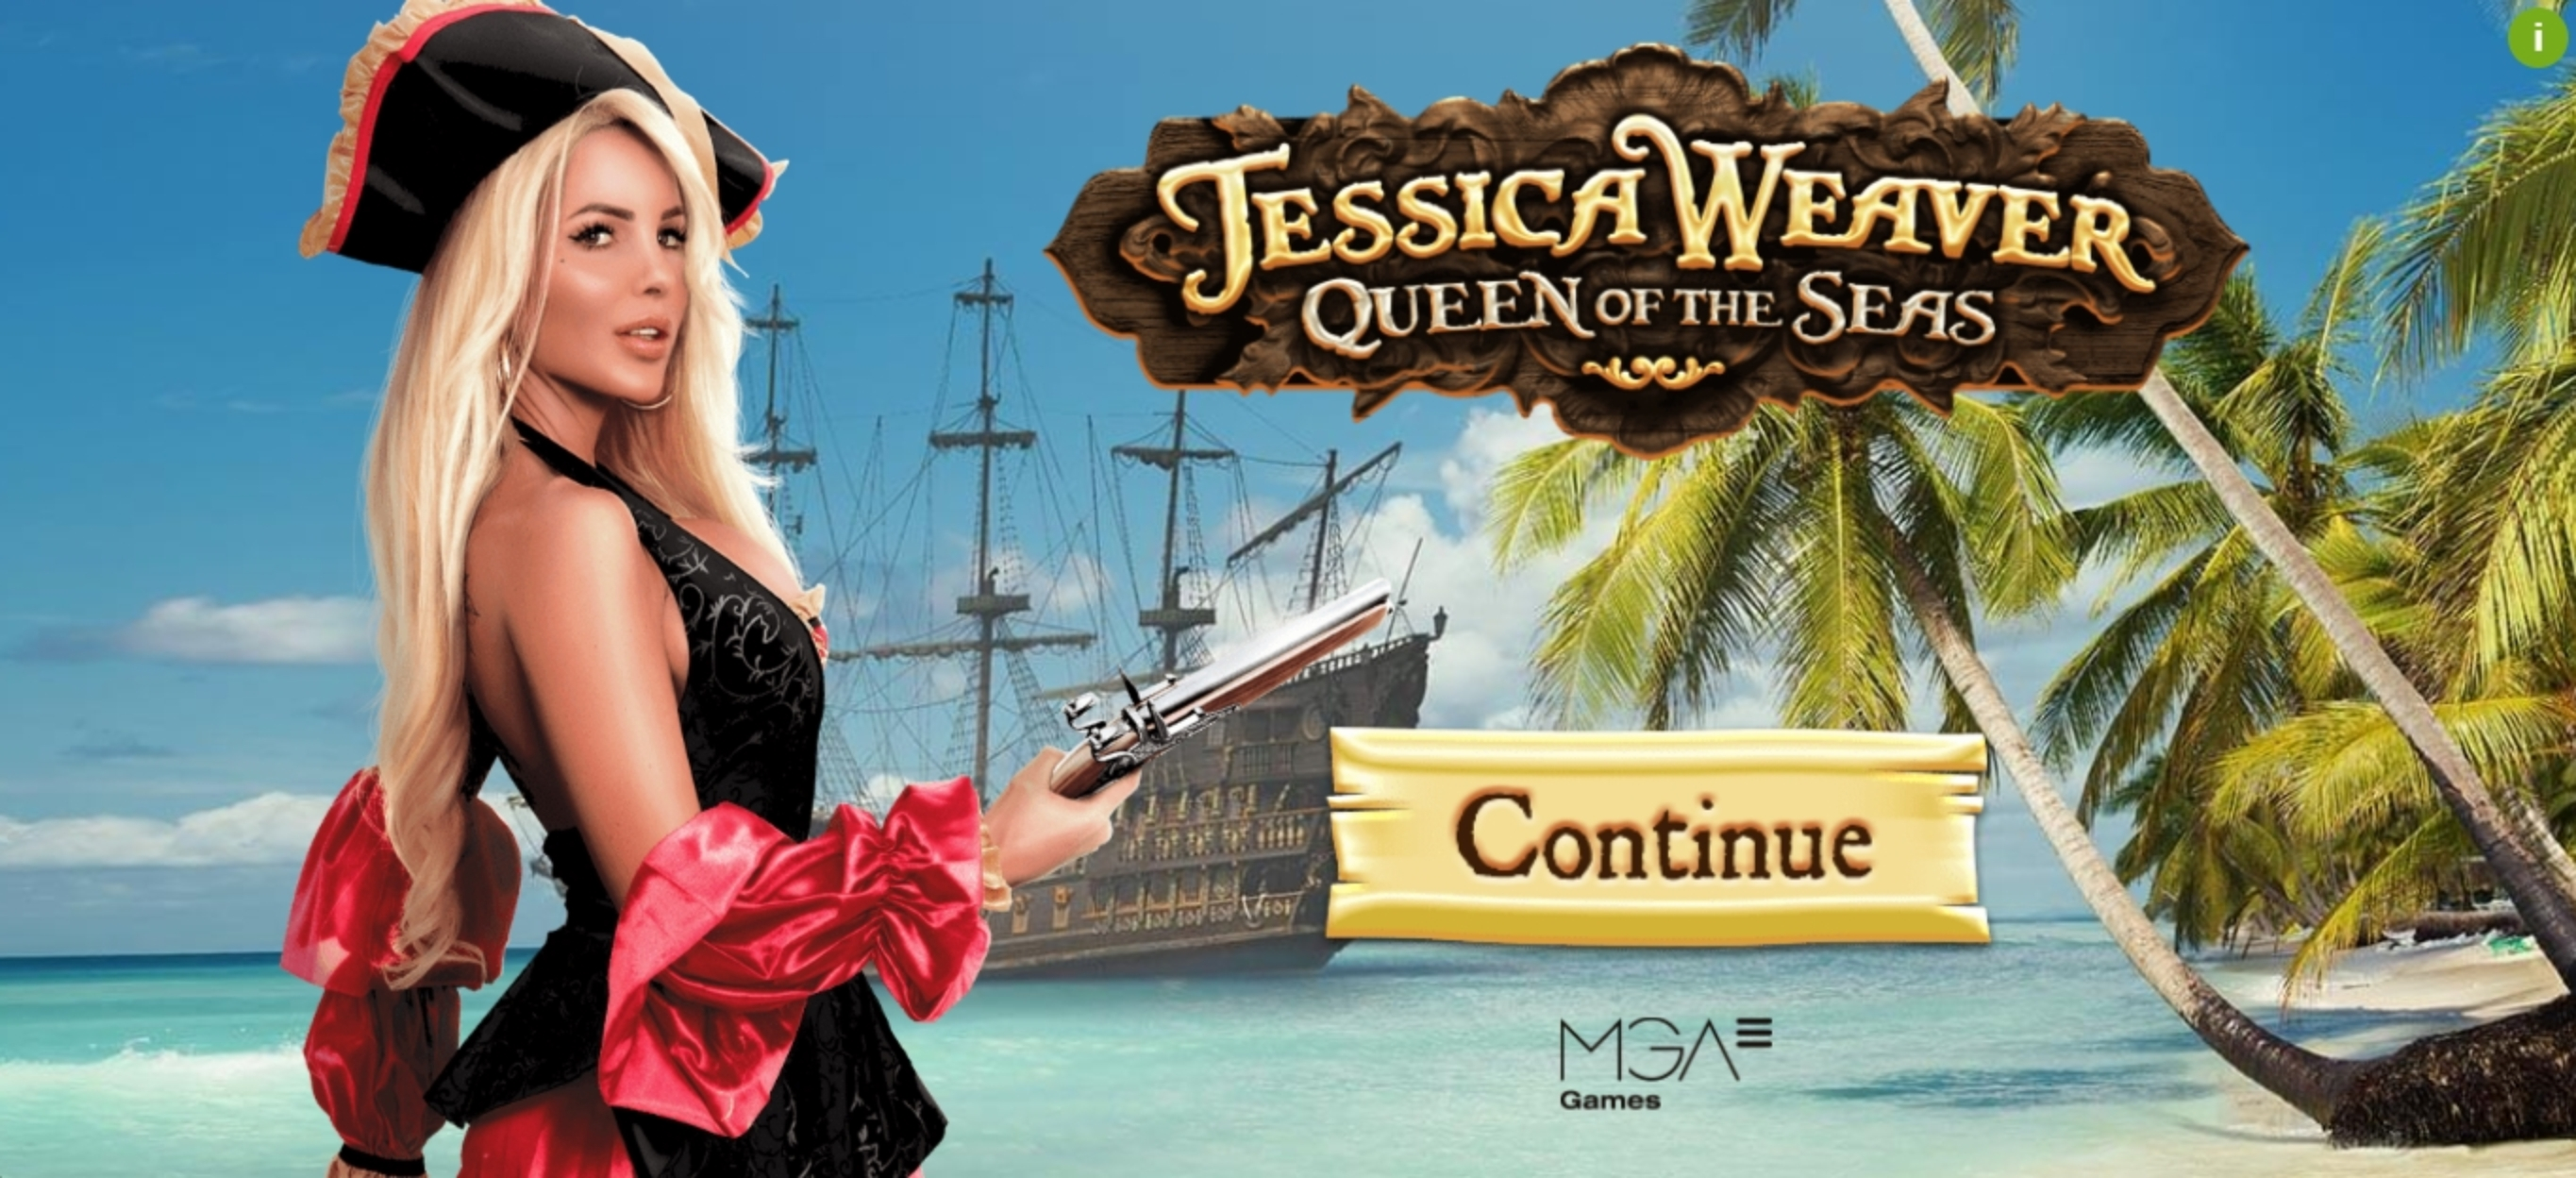 Play Jessica Weaver Queen of the Seas Free Casino Slot Game by MGA